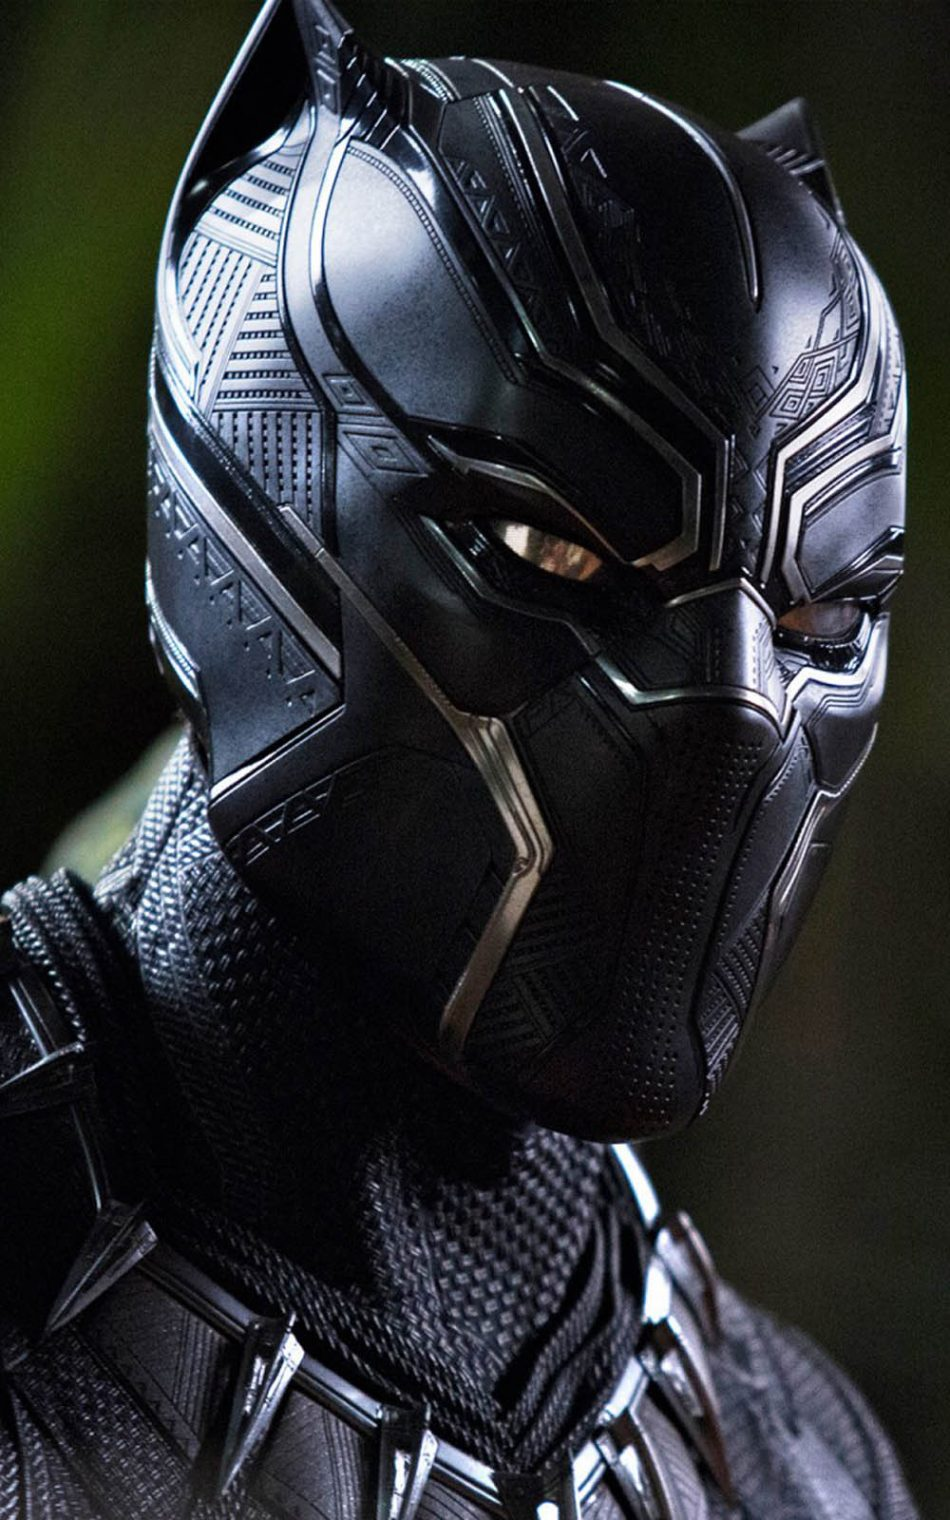 Beautiful Wallpaper Mobile Black - Black-Panther-Movie-HD-Mobile-Wallpaper-950x1520  You Should Have_1002025.jpg